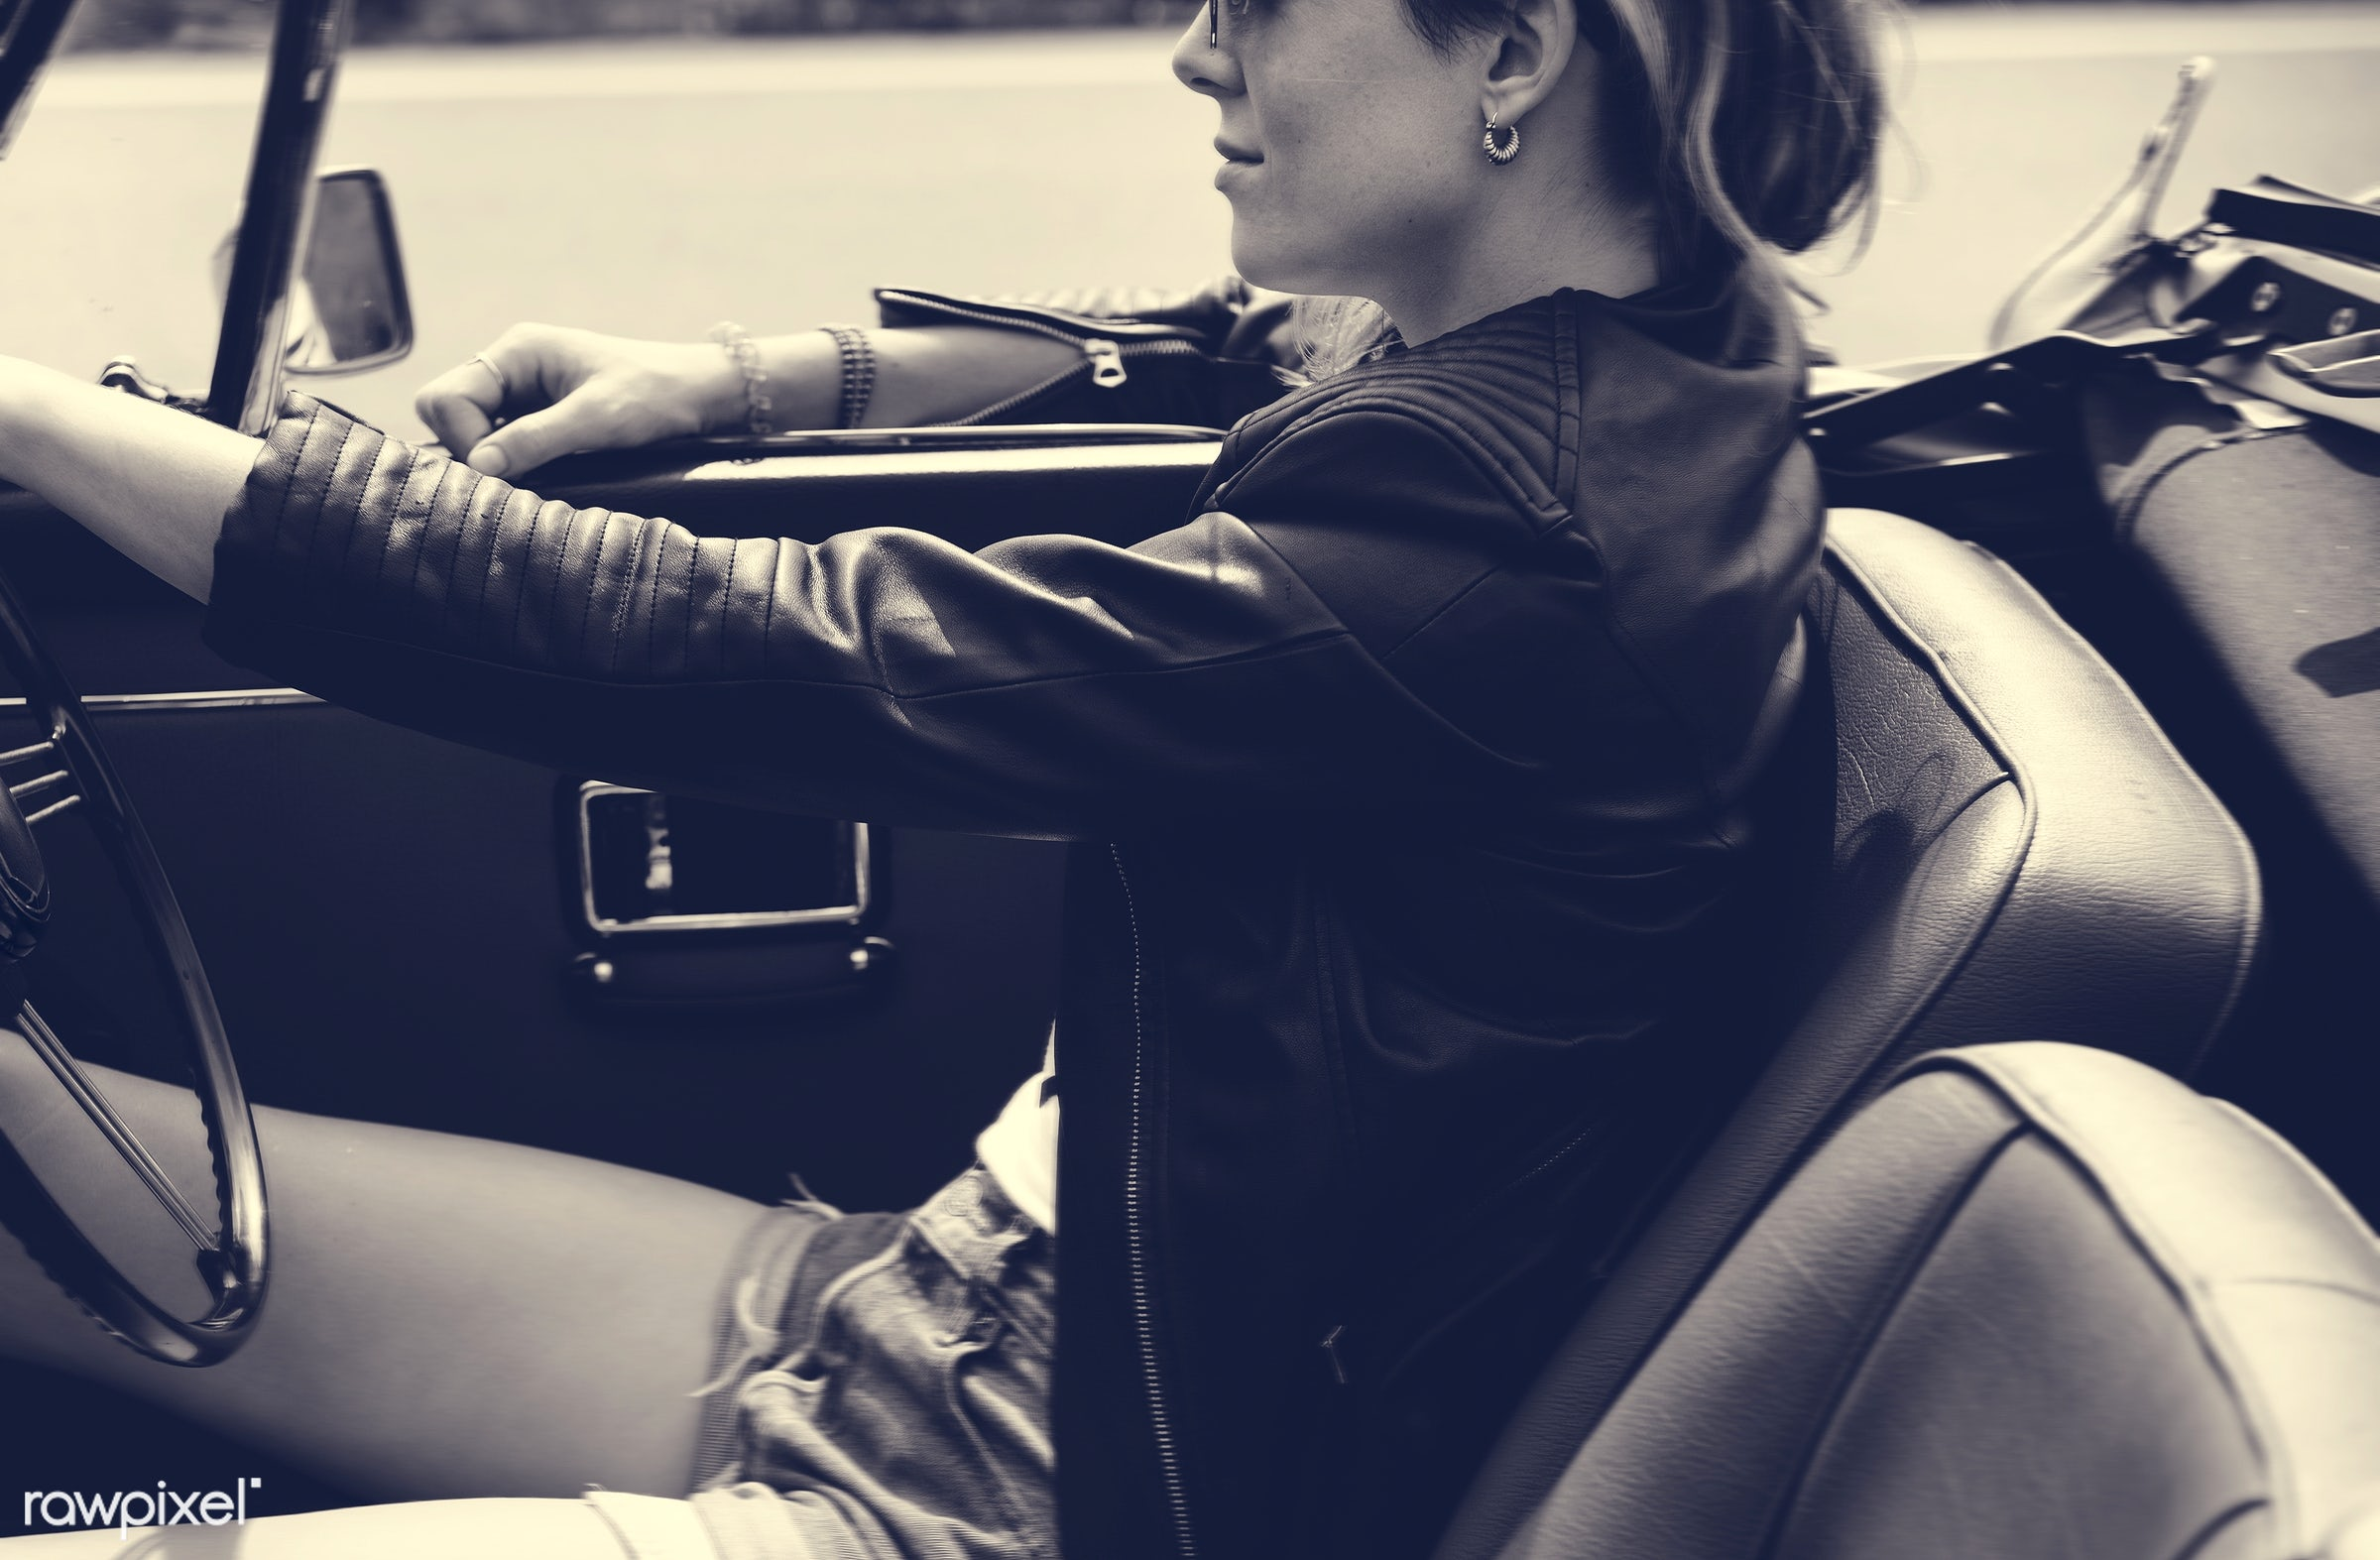 adult, adventure, attractive, beauty, car, down, drive, driving, female, flag, gypsy, hippy, hipster, journey, joyful,...